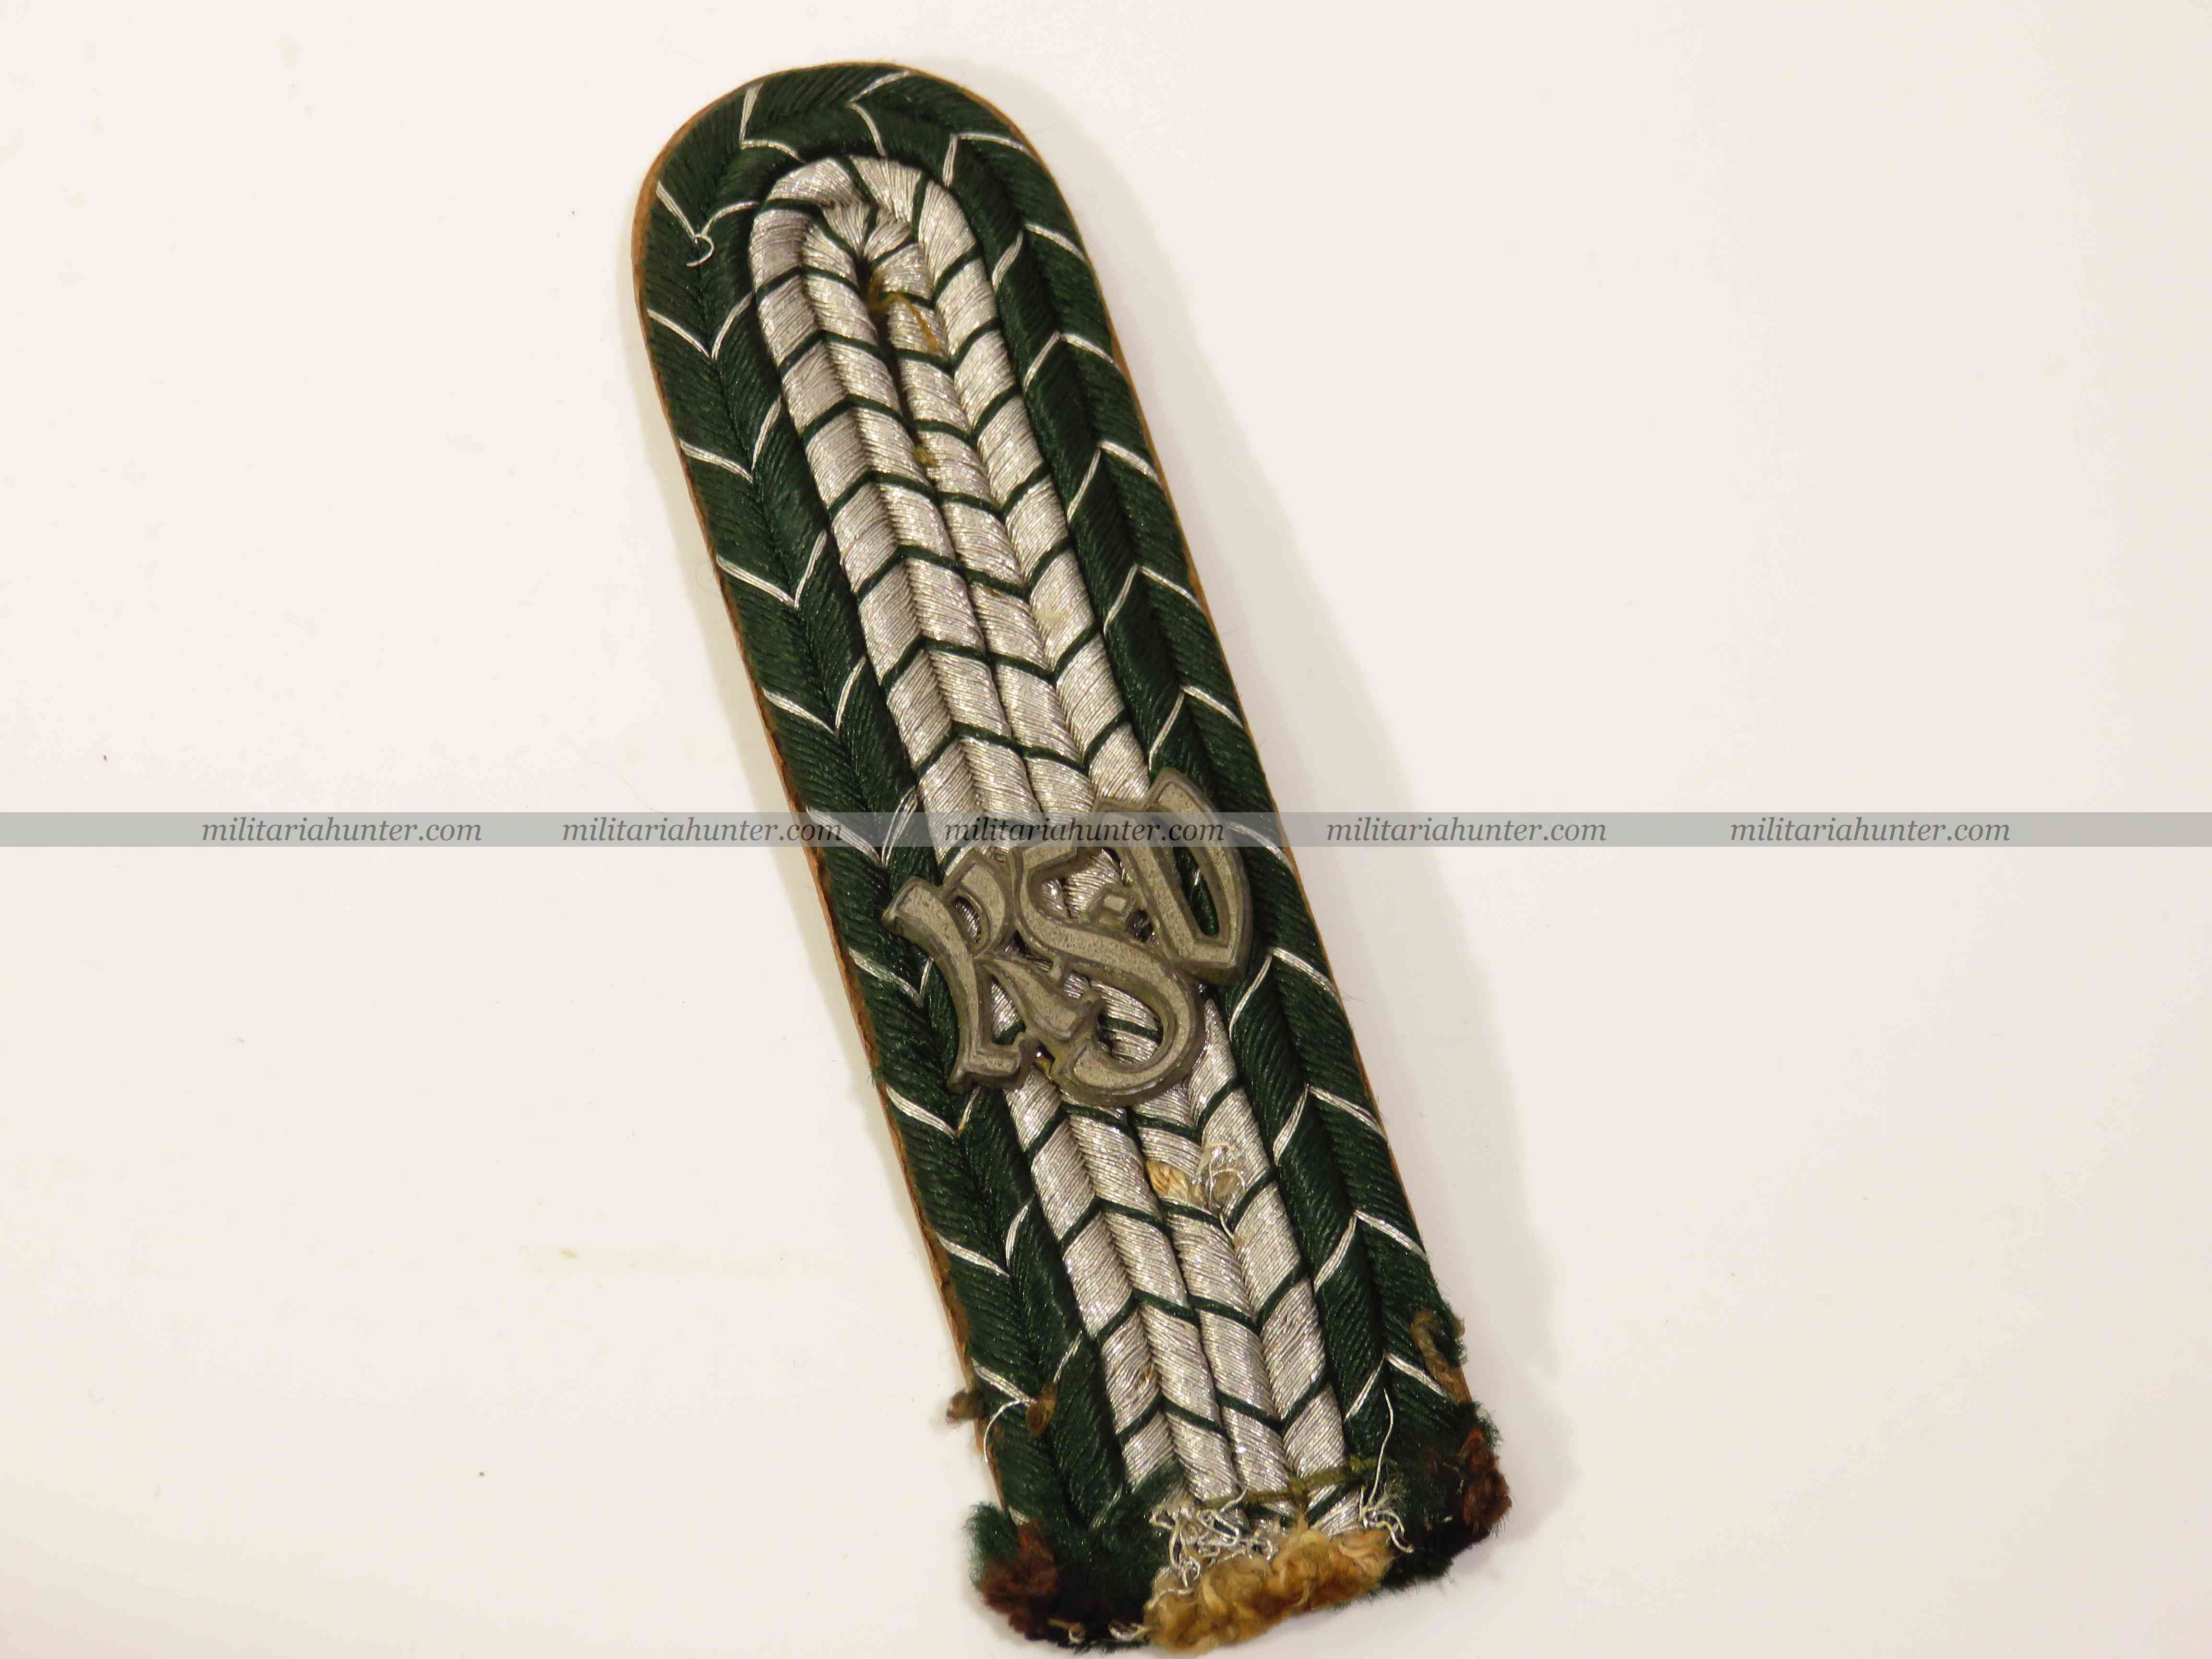 militaria : ww2 german finance administration shoulder board - REICHSFINANZERVERWALTUNG Schu